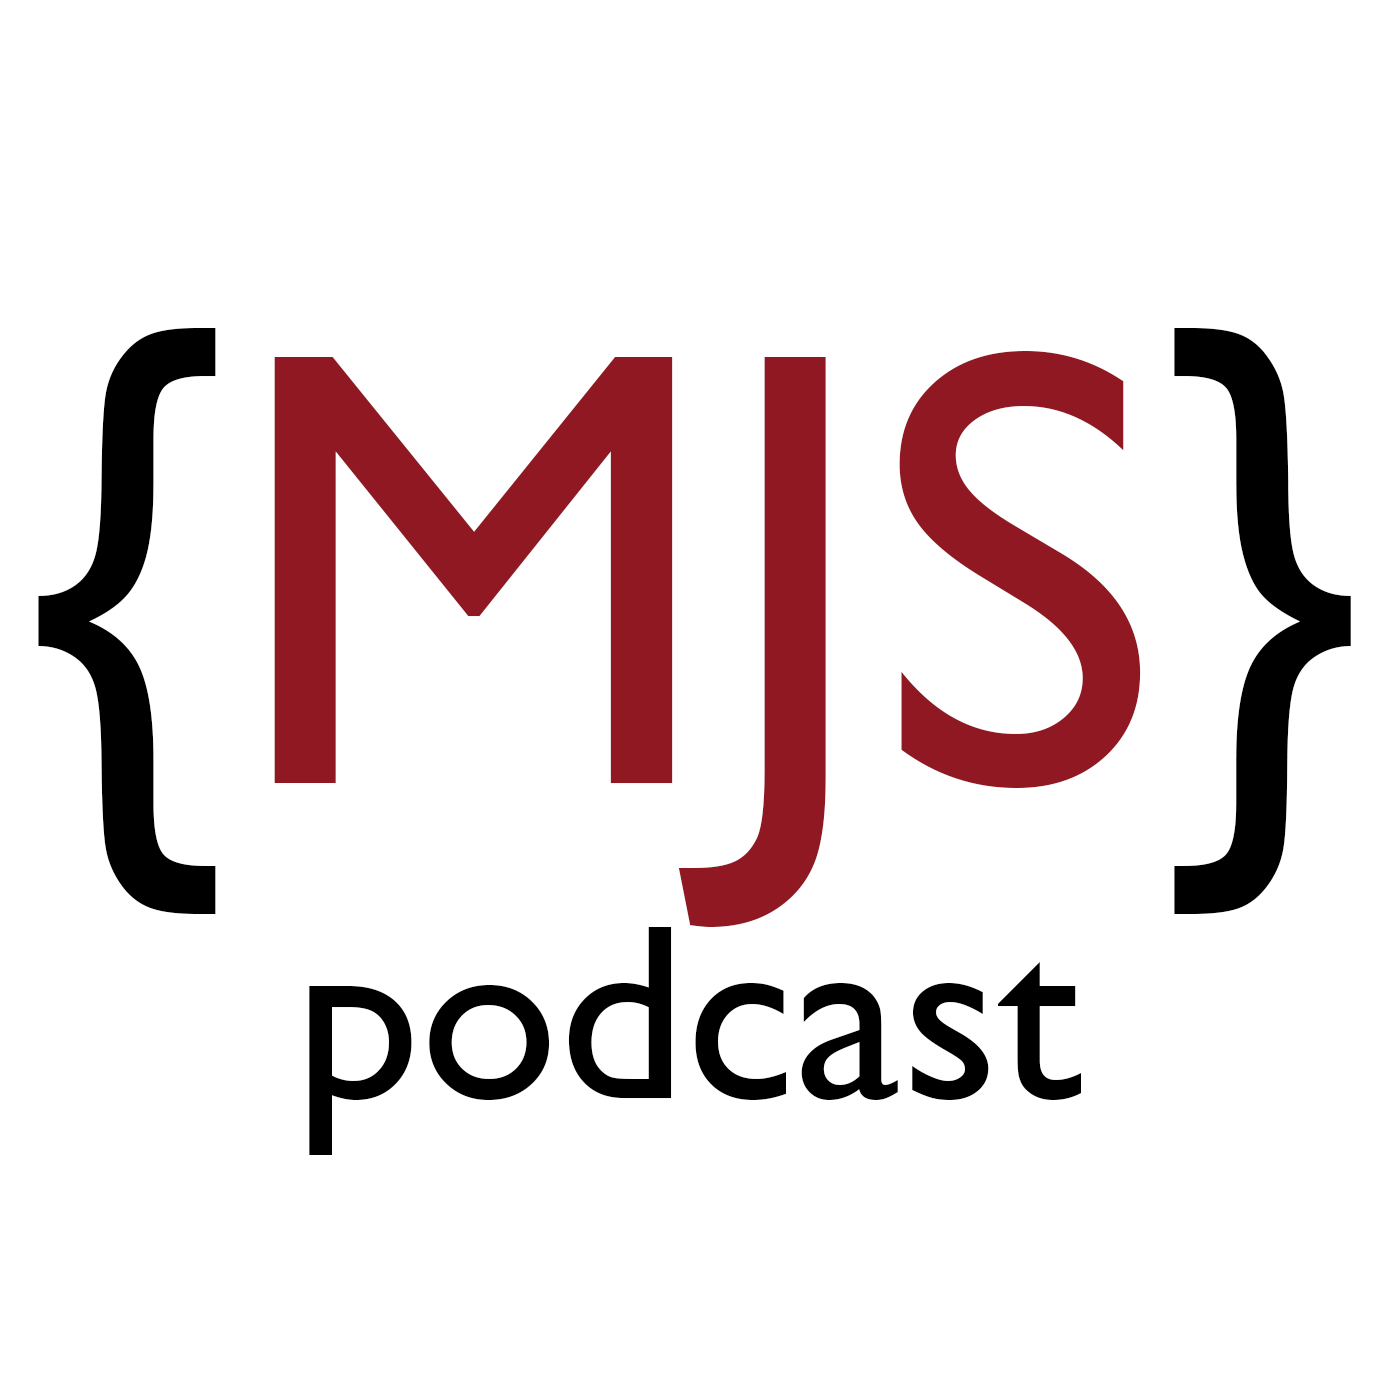 Podcast - Middle J Studios, inc. | Photography | Minneapolis MN. (612) 379-9900